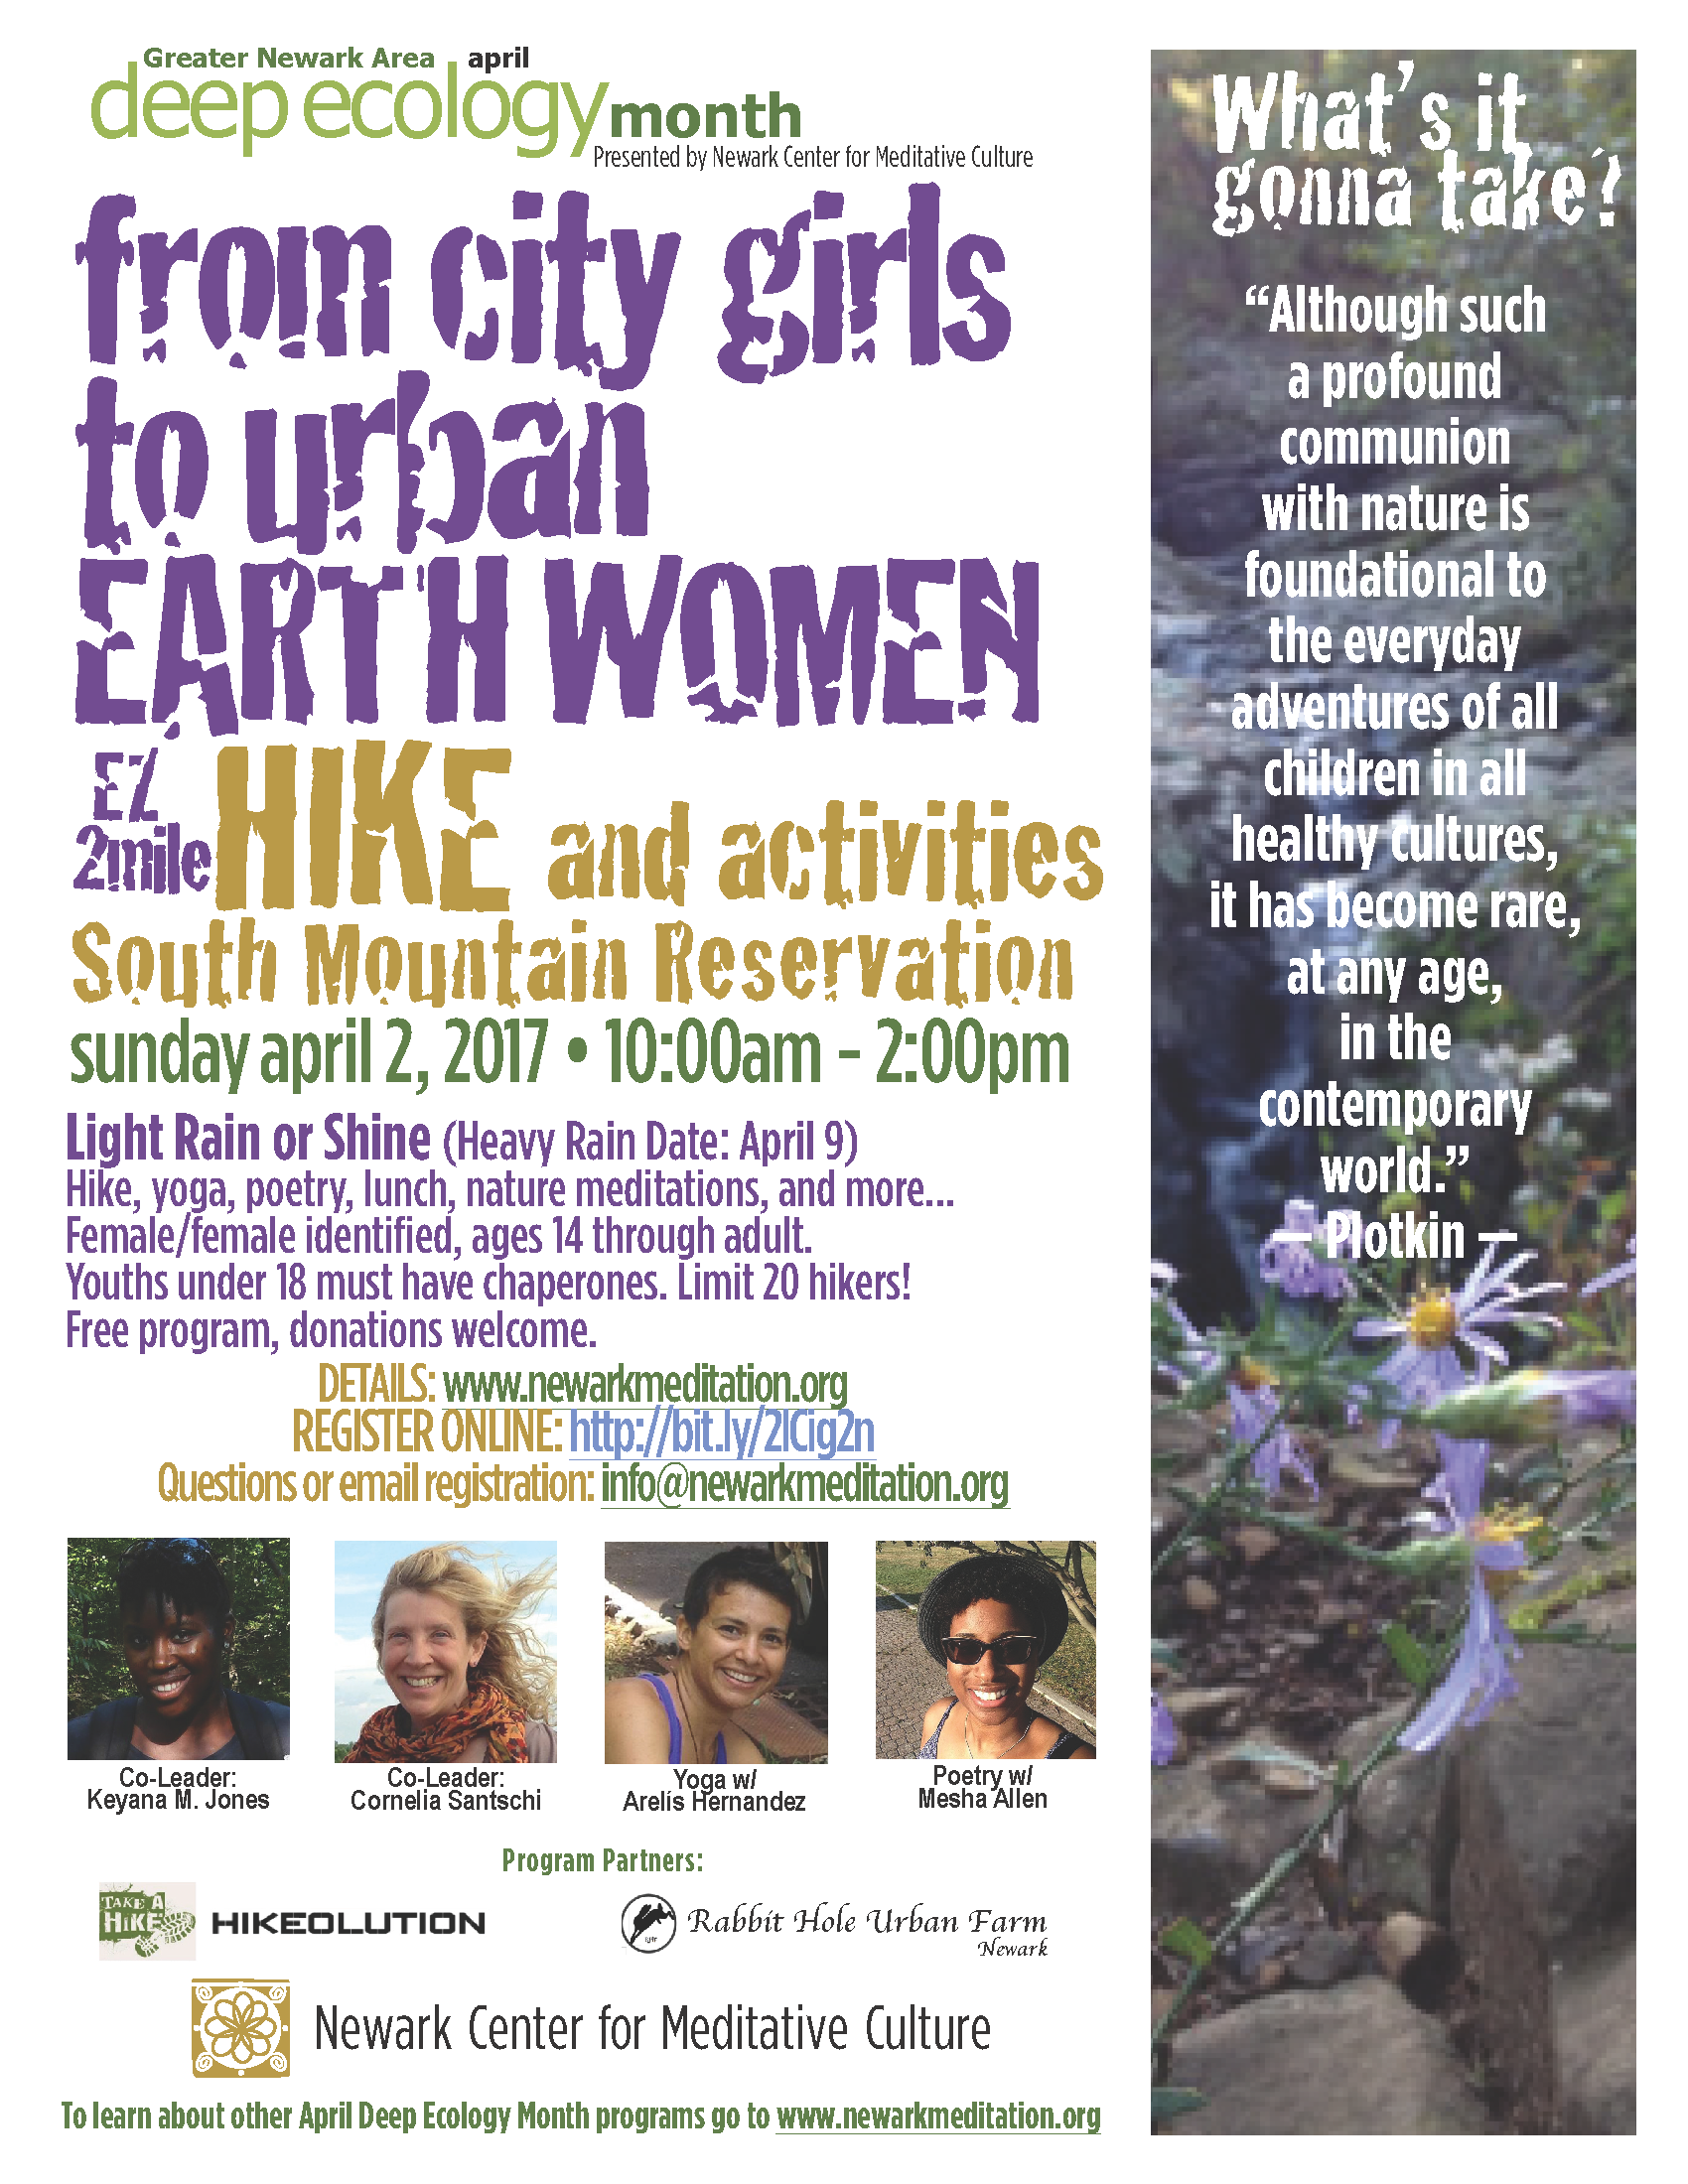 Flyer_CityGirls2EarthWomen Hike.png